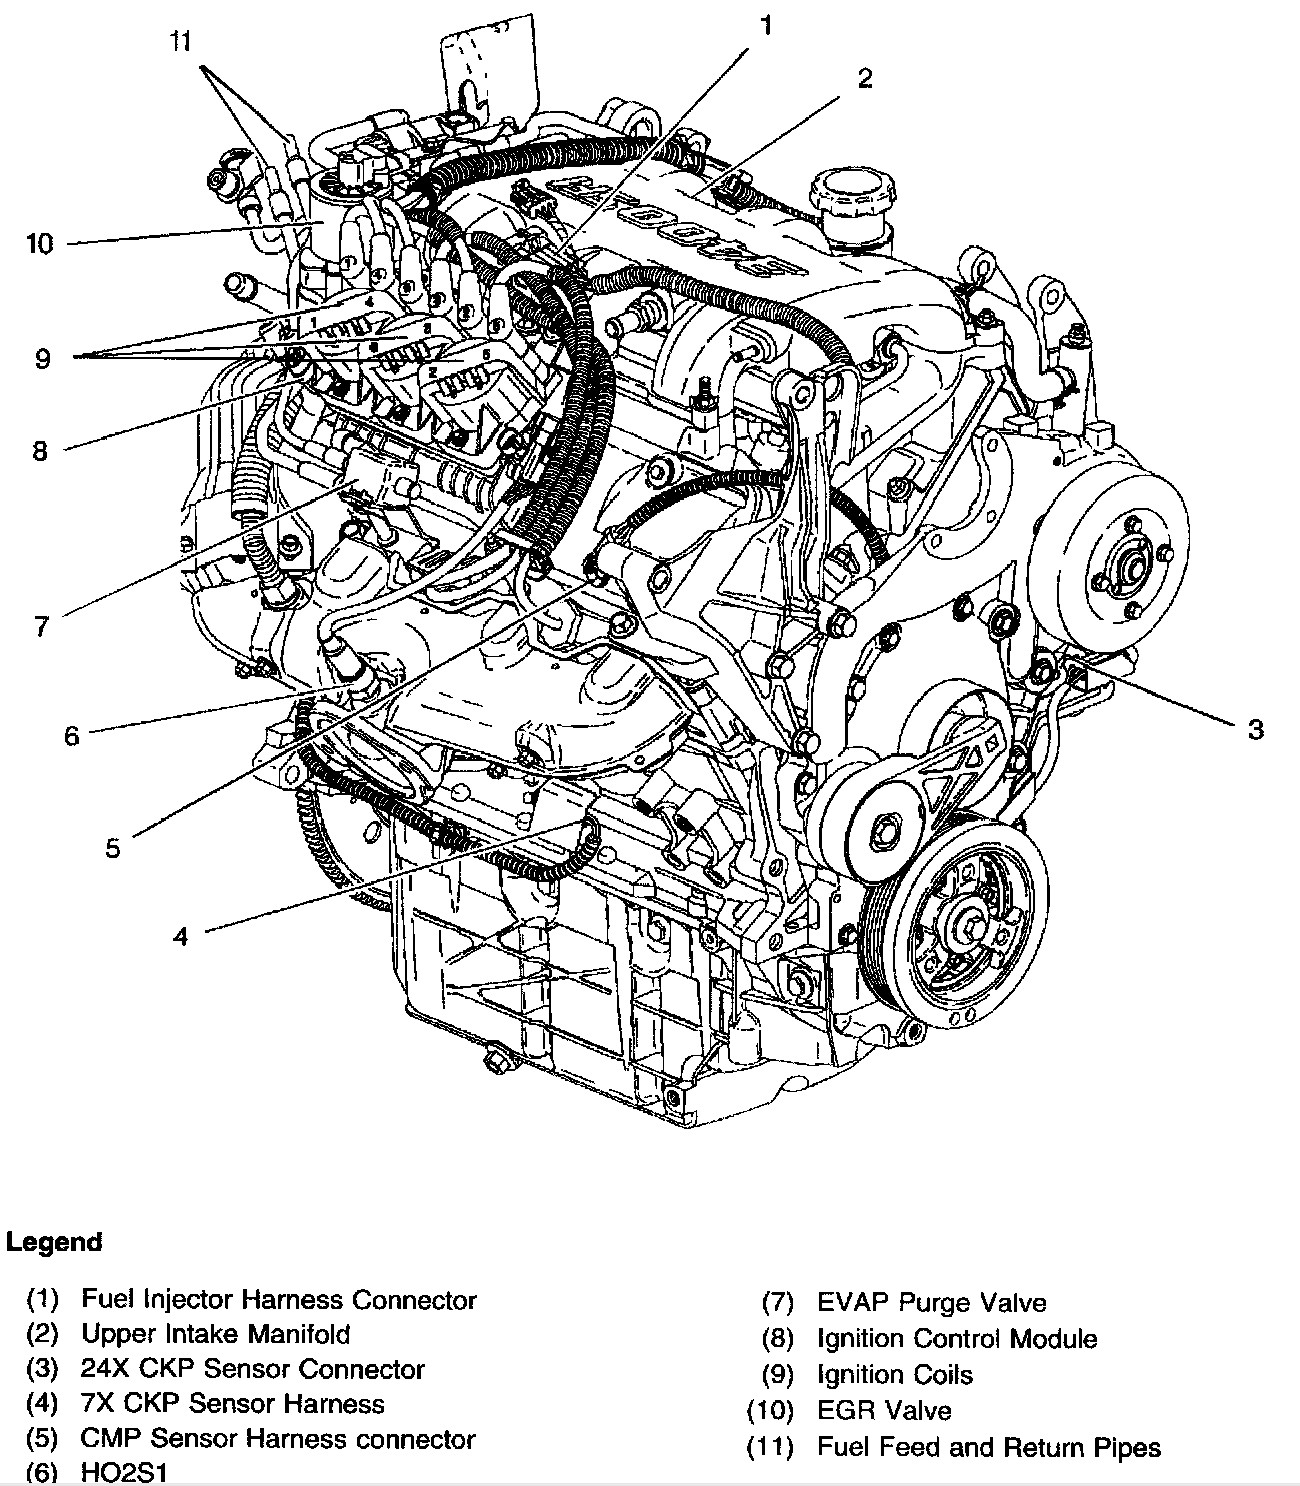 hight resolution of 1996 toyota tacoma 3 4 v6 engine diagrams wiring diagram show 1996 toyota tacoma 3 4